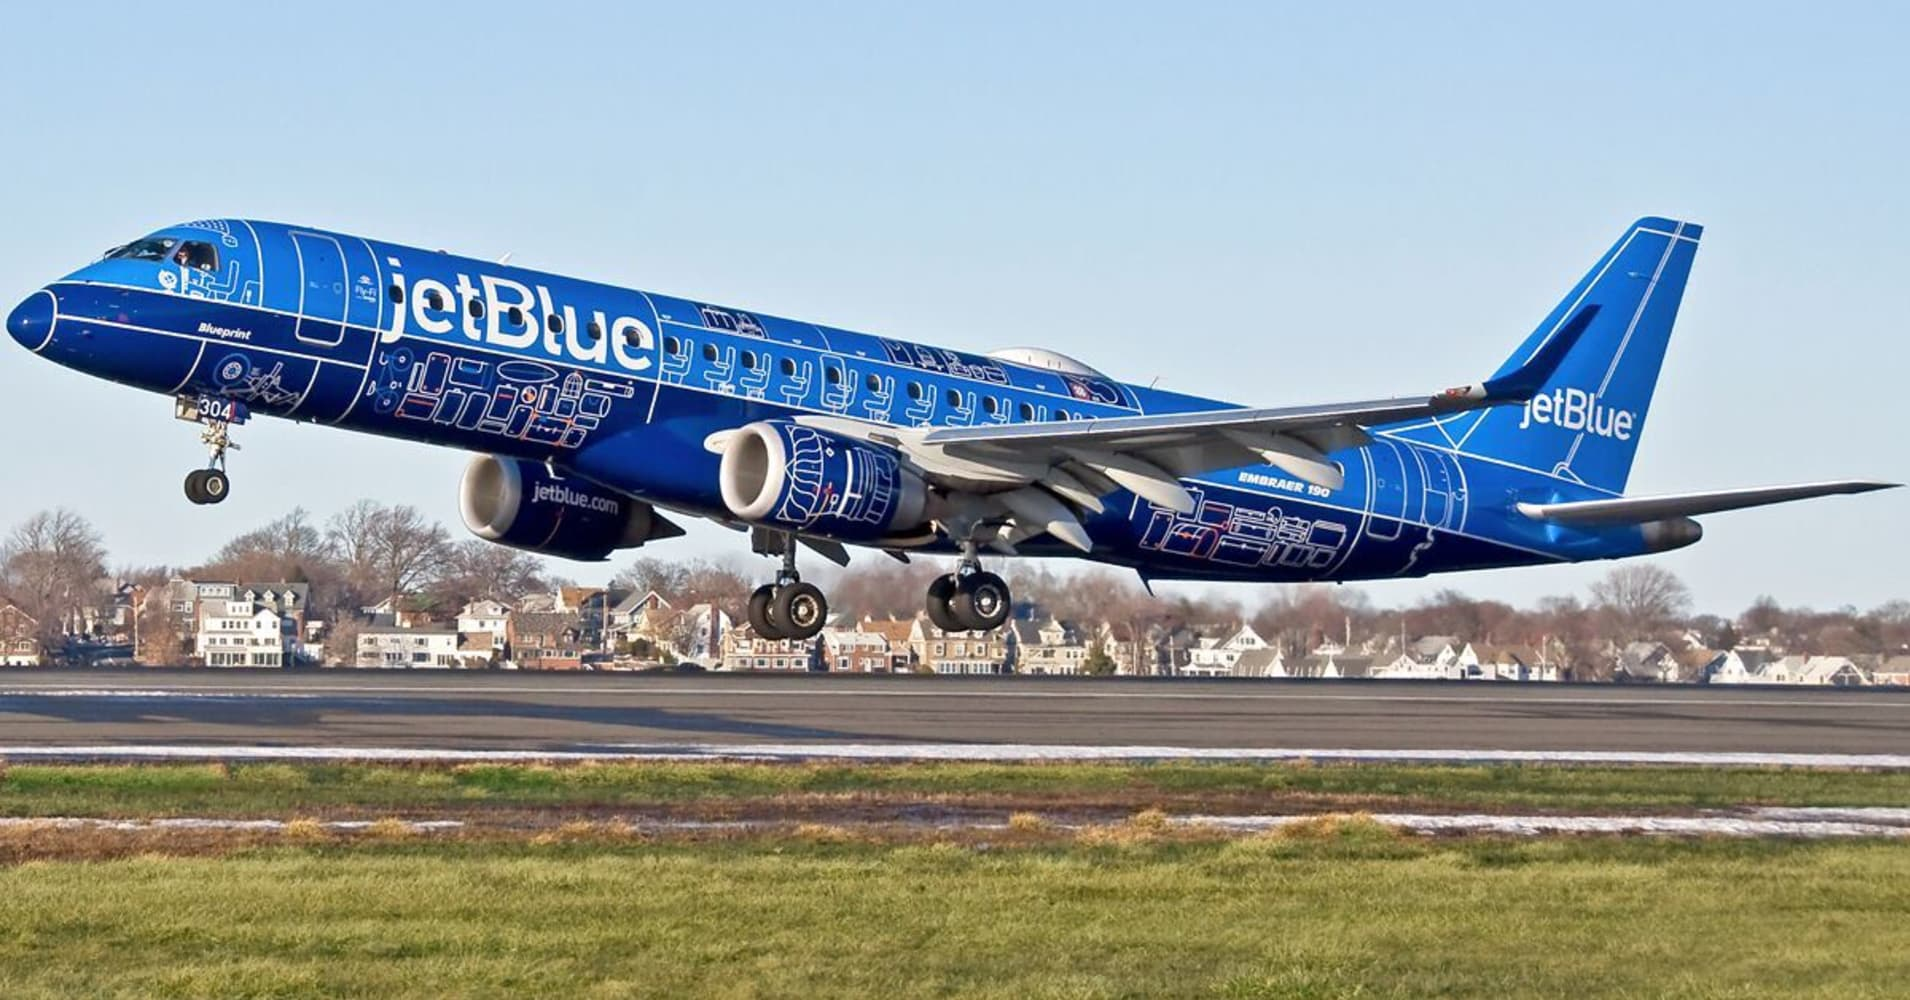 JetBlue Blueprint plane.